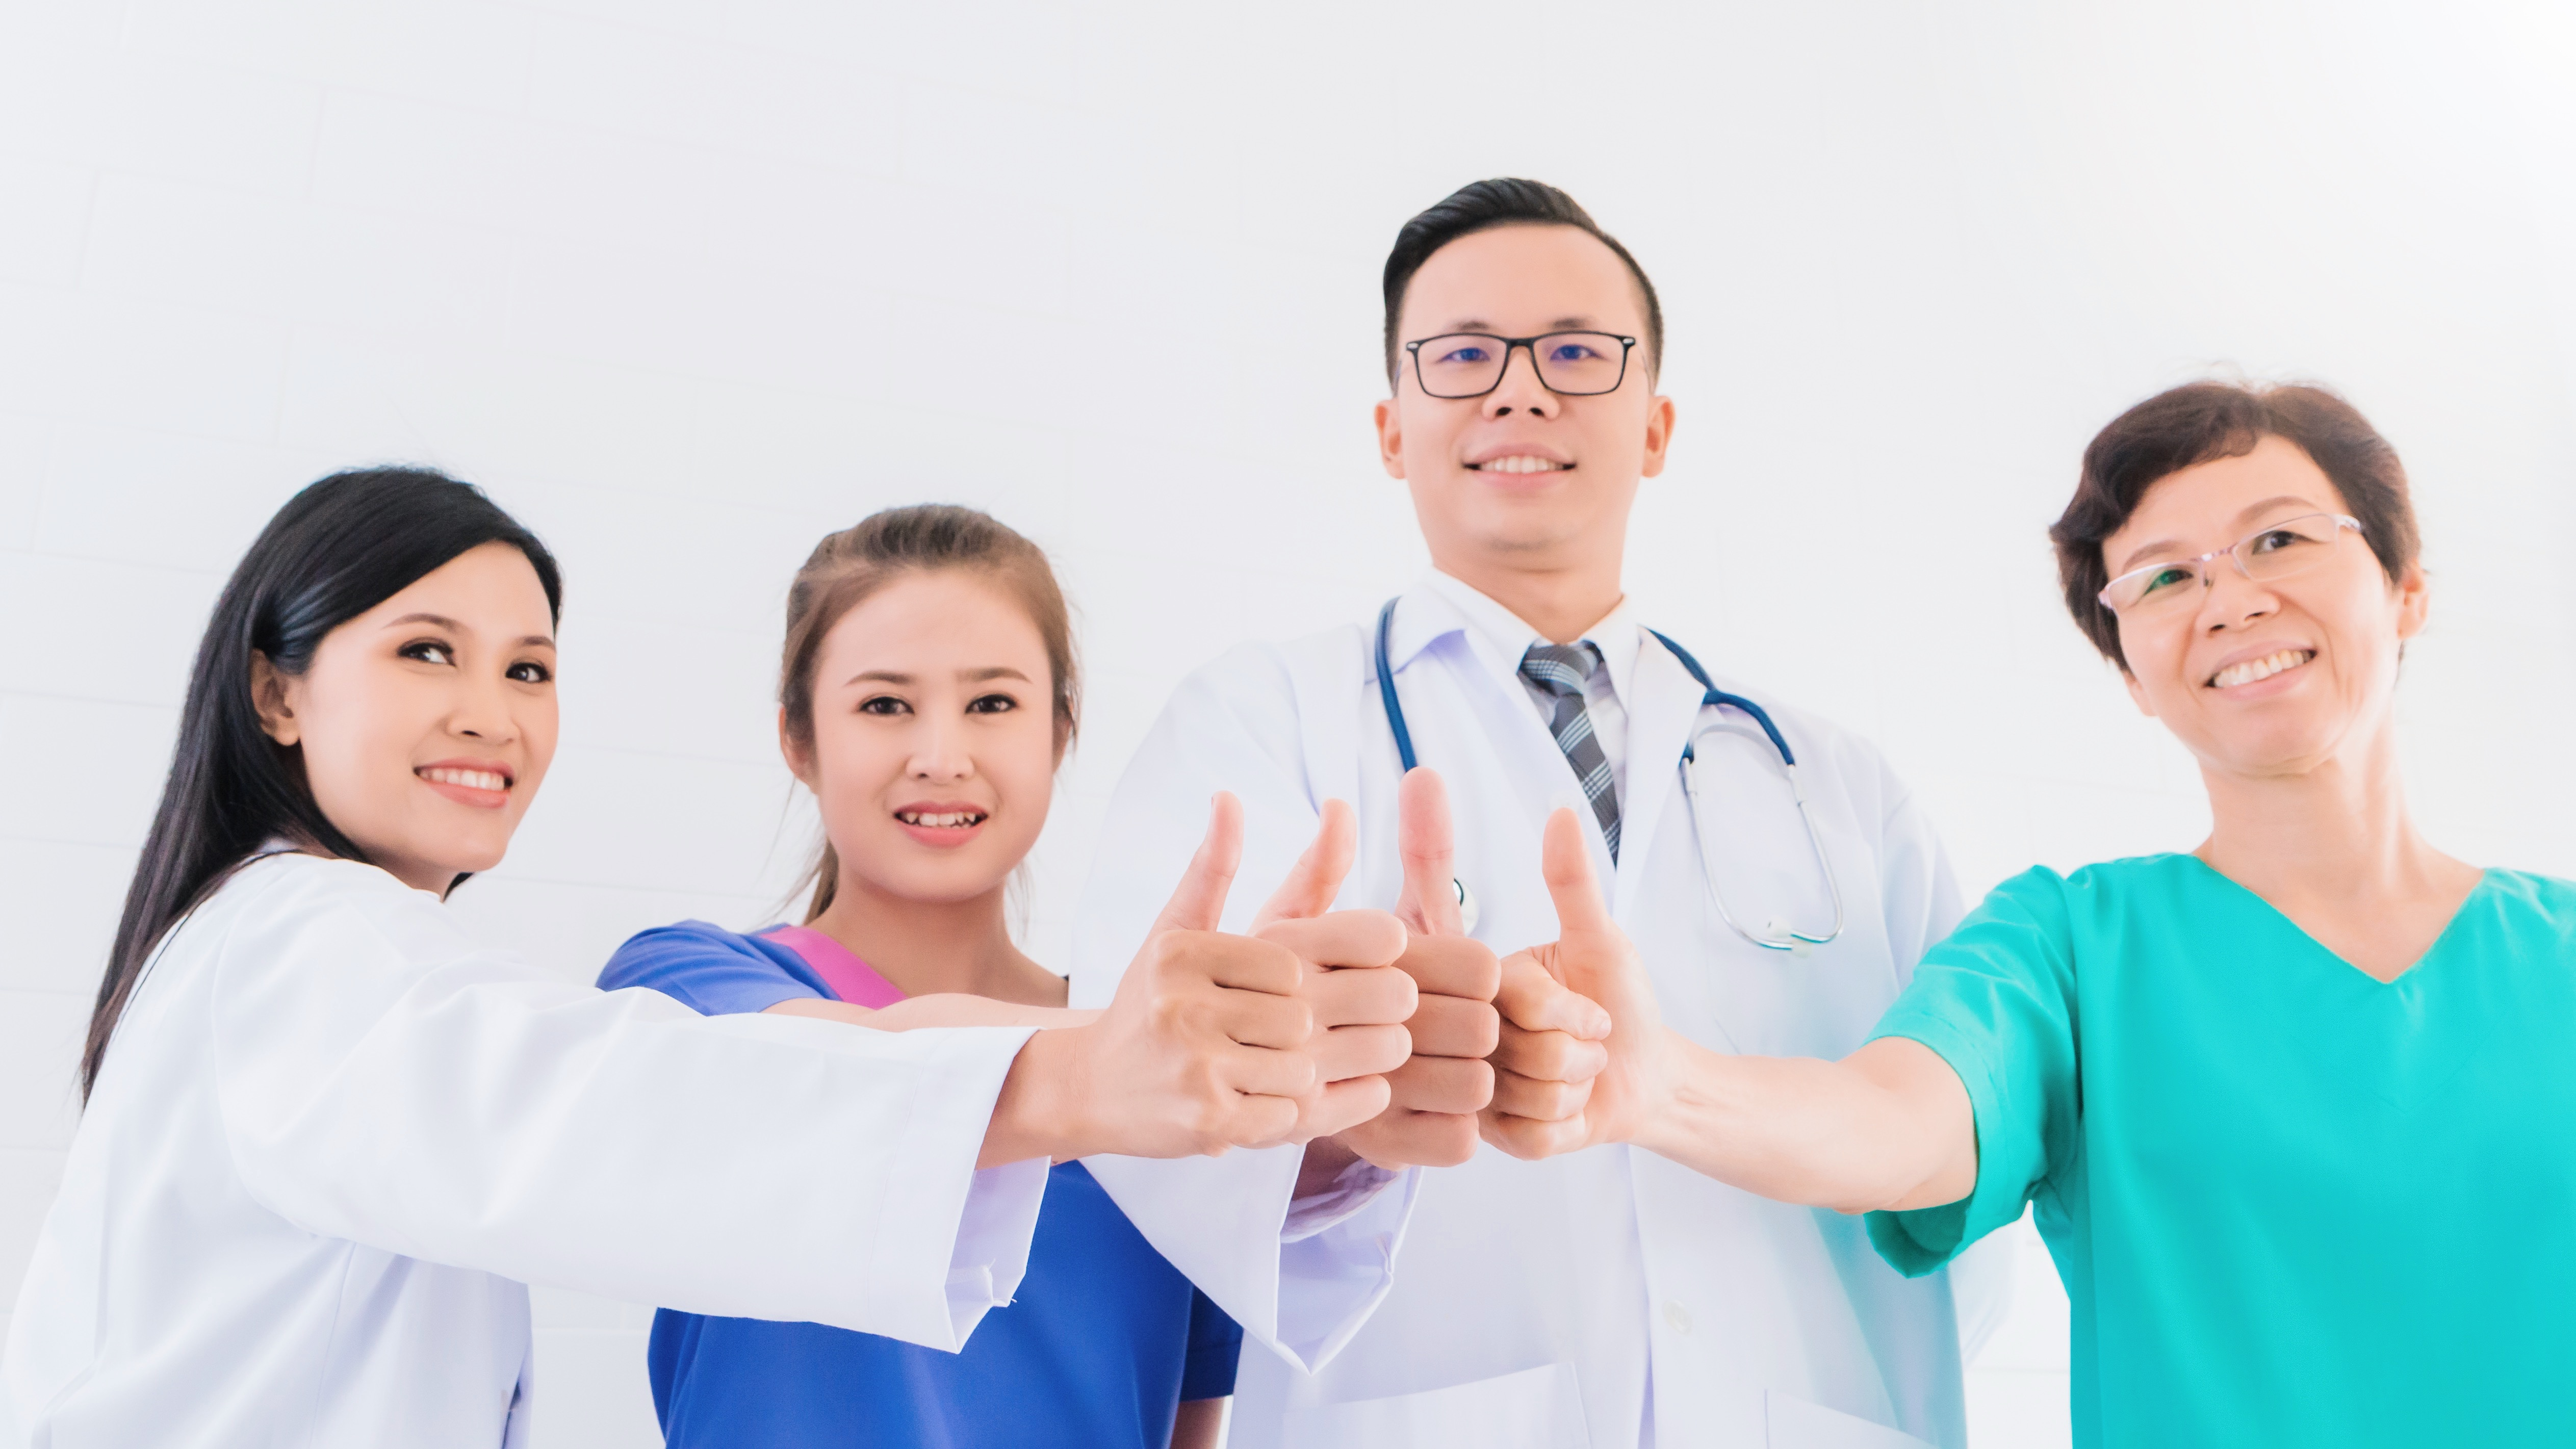 portrait-smiling-asian-medical-male-doctor-standing-showing-hand-thumb-up-with-team-staff-hospital.jpg